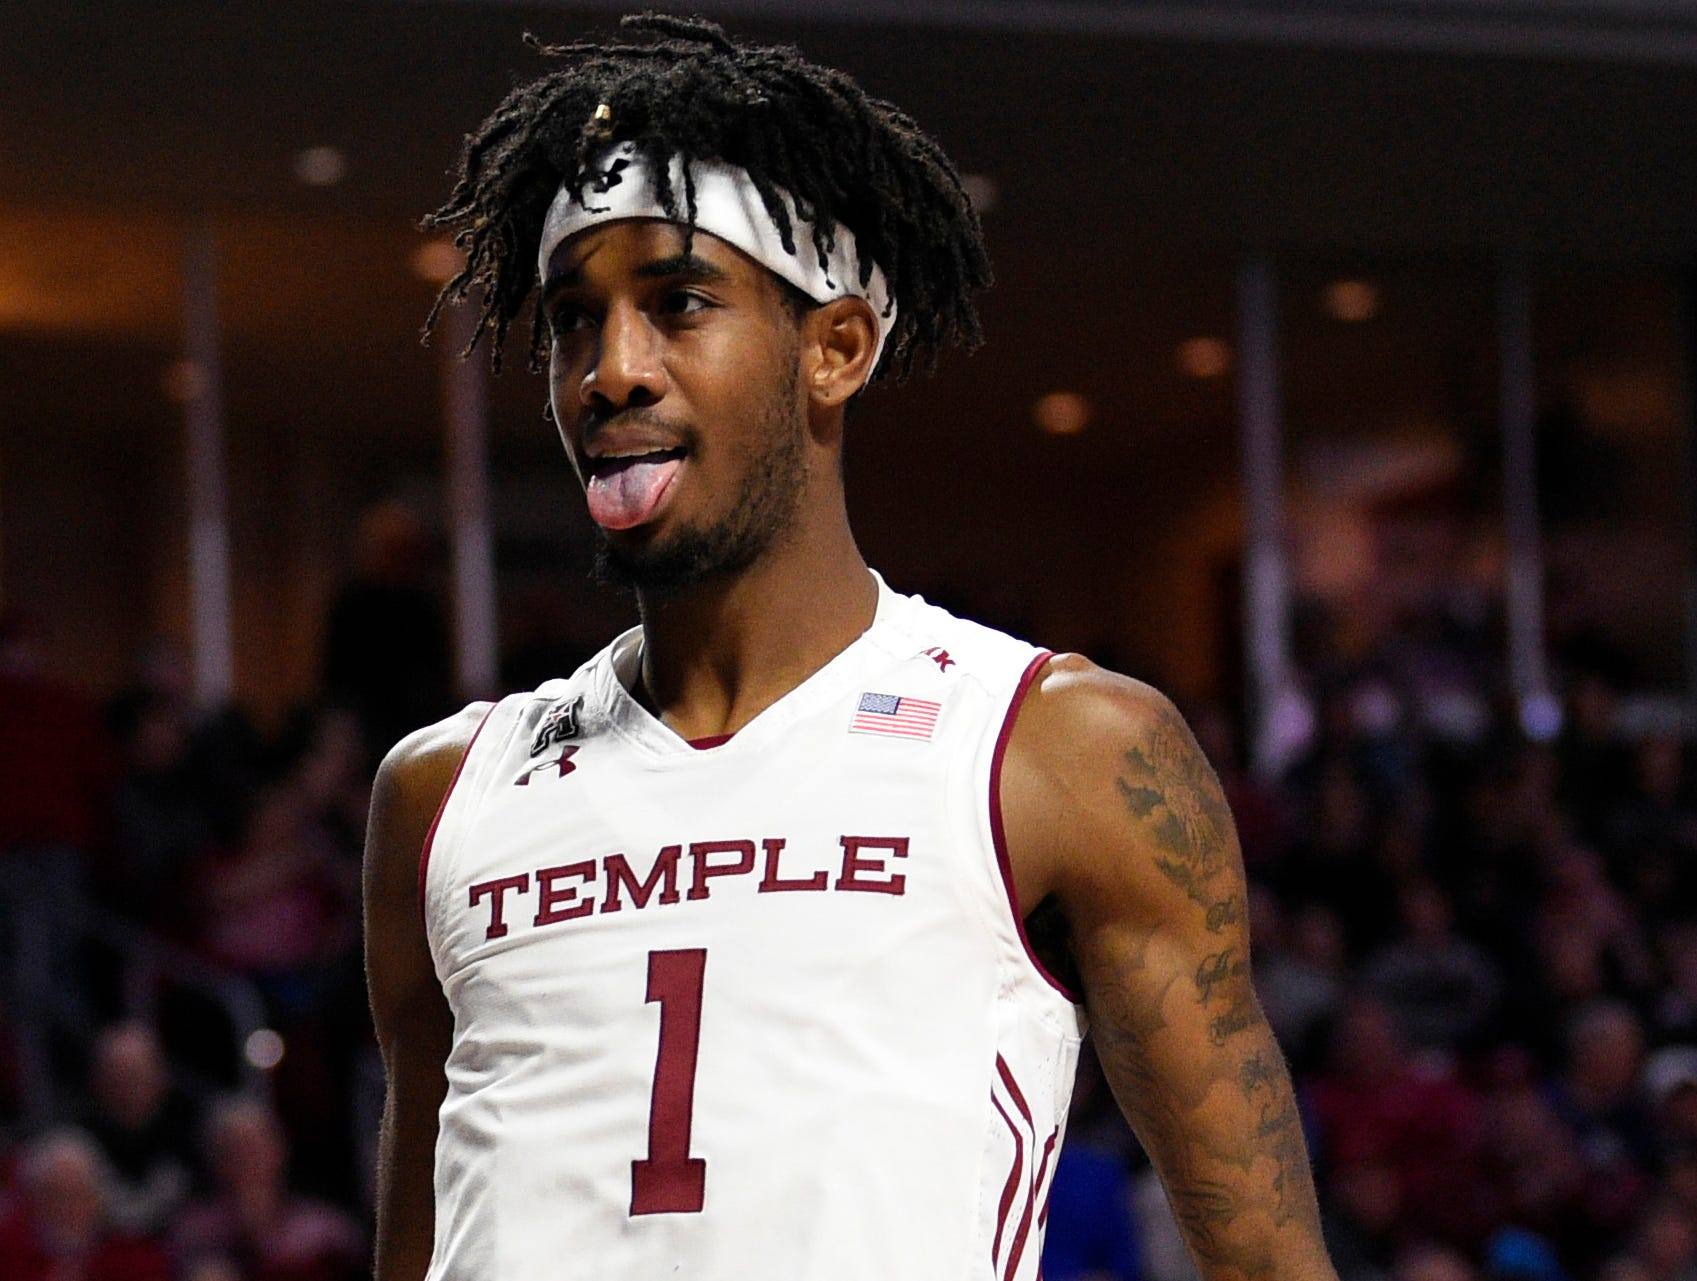 Temple (23-9), No. 11 seed - First Four game - in East, at-large bid out of American Athletic Conference